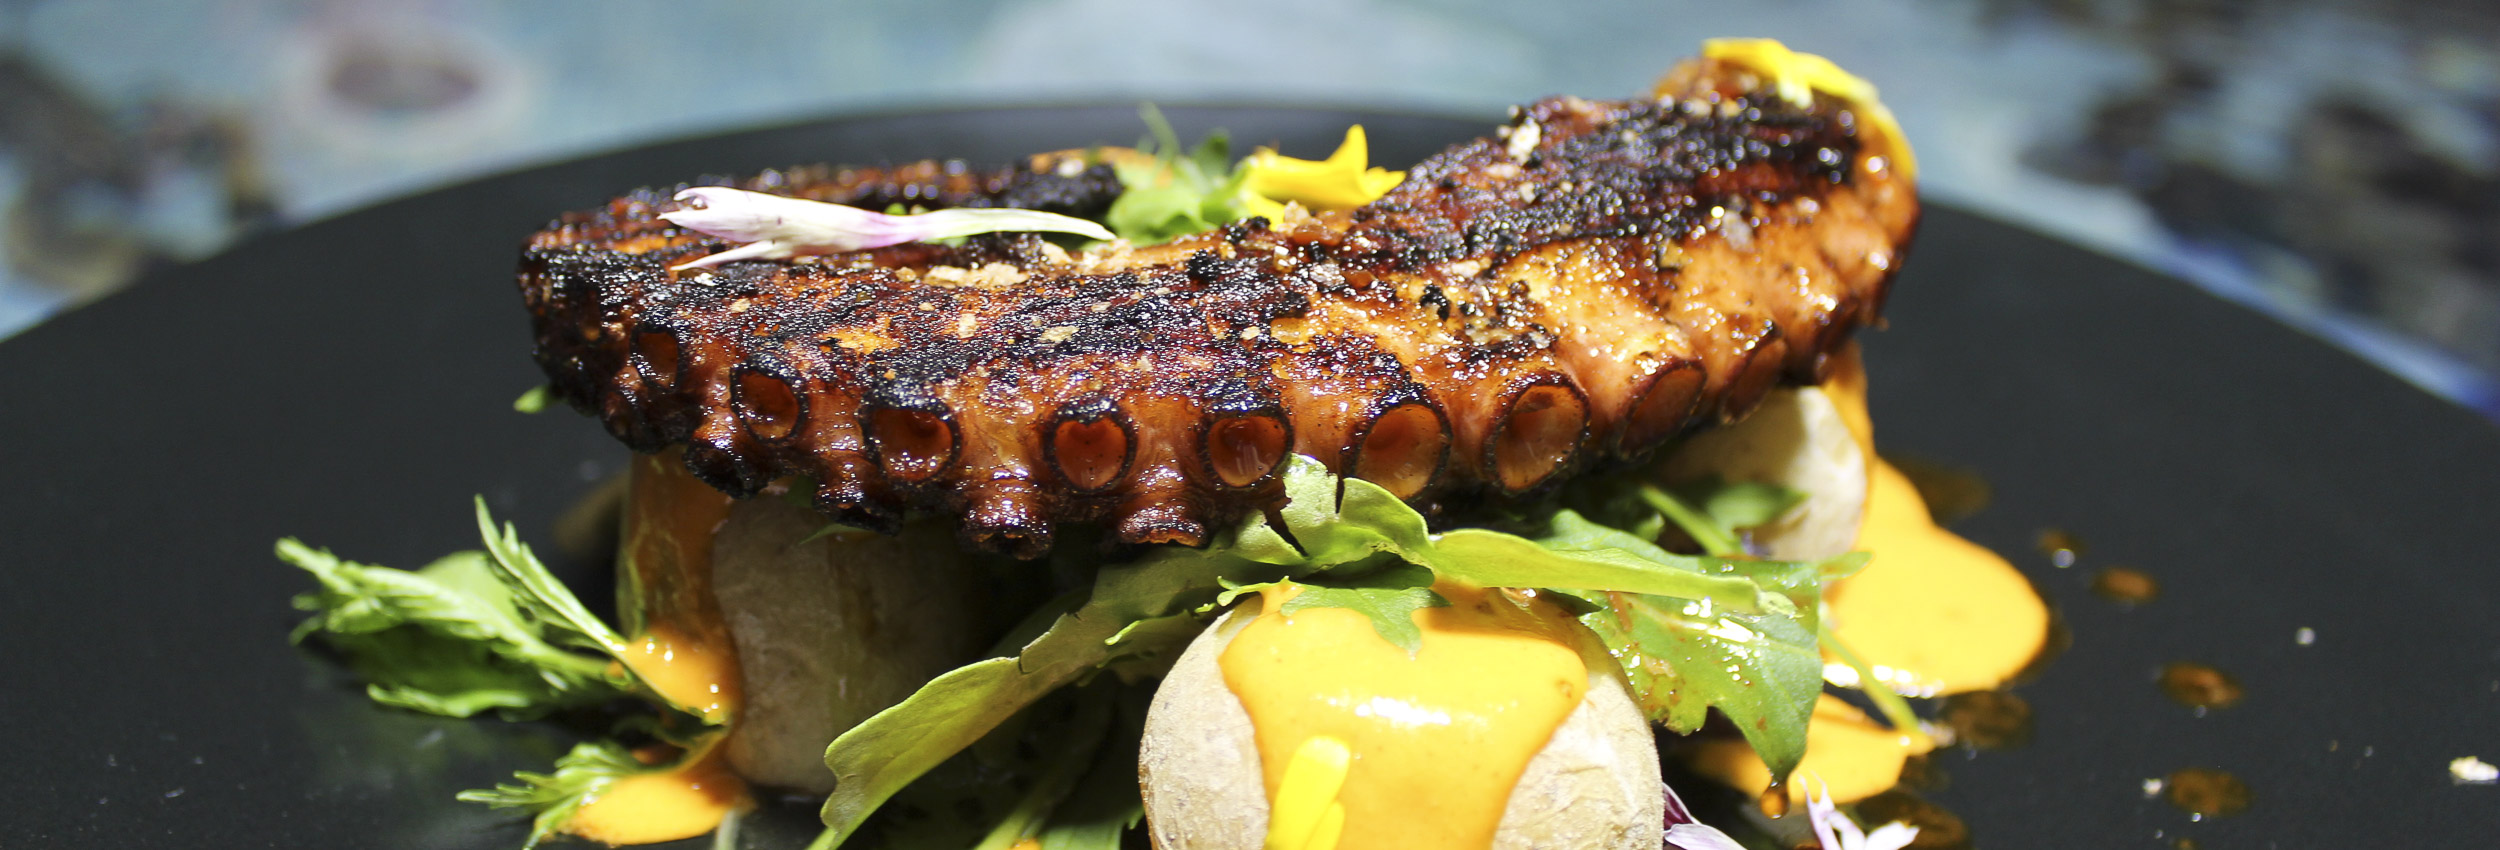 Grilled octopus glazed with smoked paprika vinaigrette